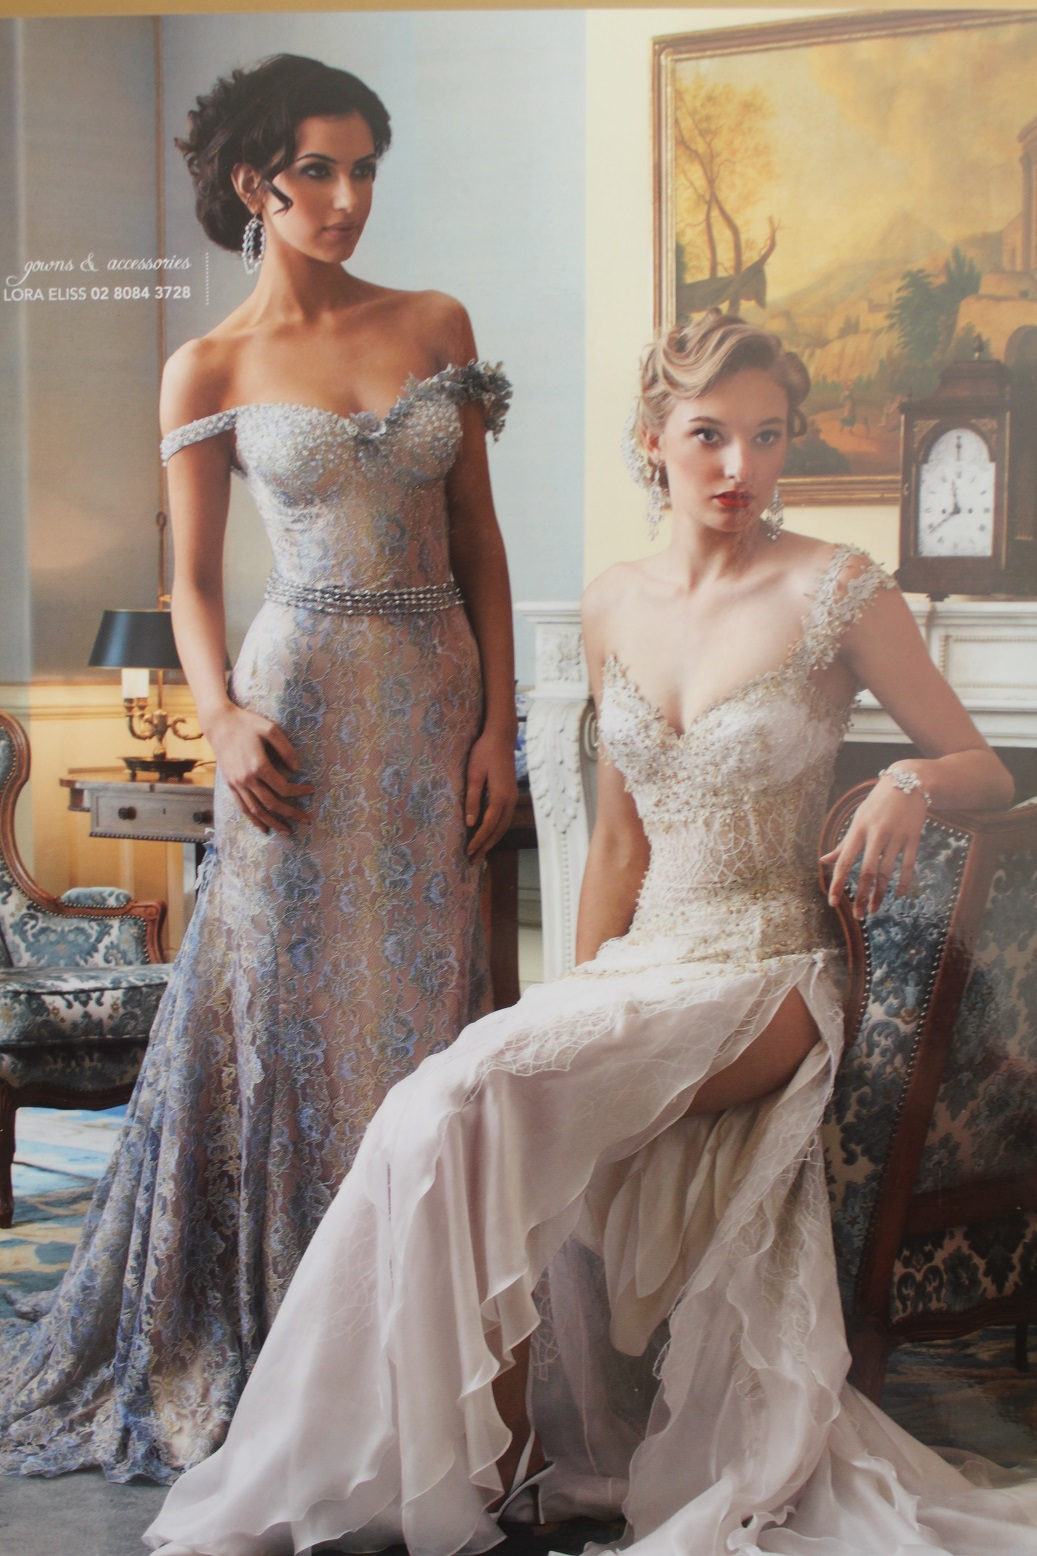 Wedding Dresses For Non Traditional : Non traditional wedding gowns lora eliss moda